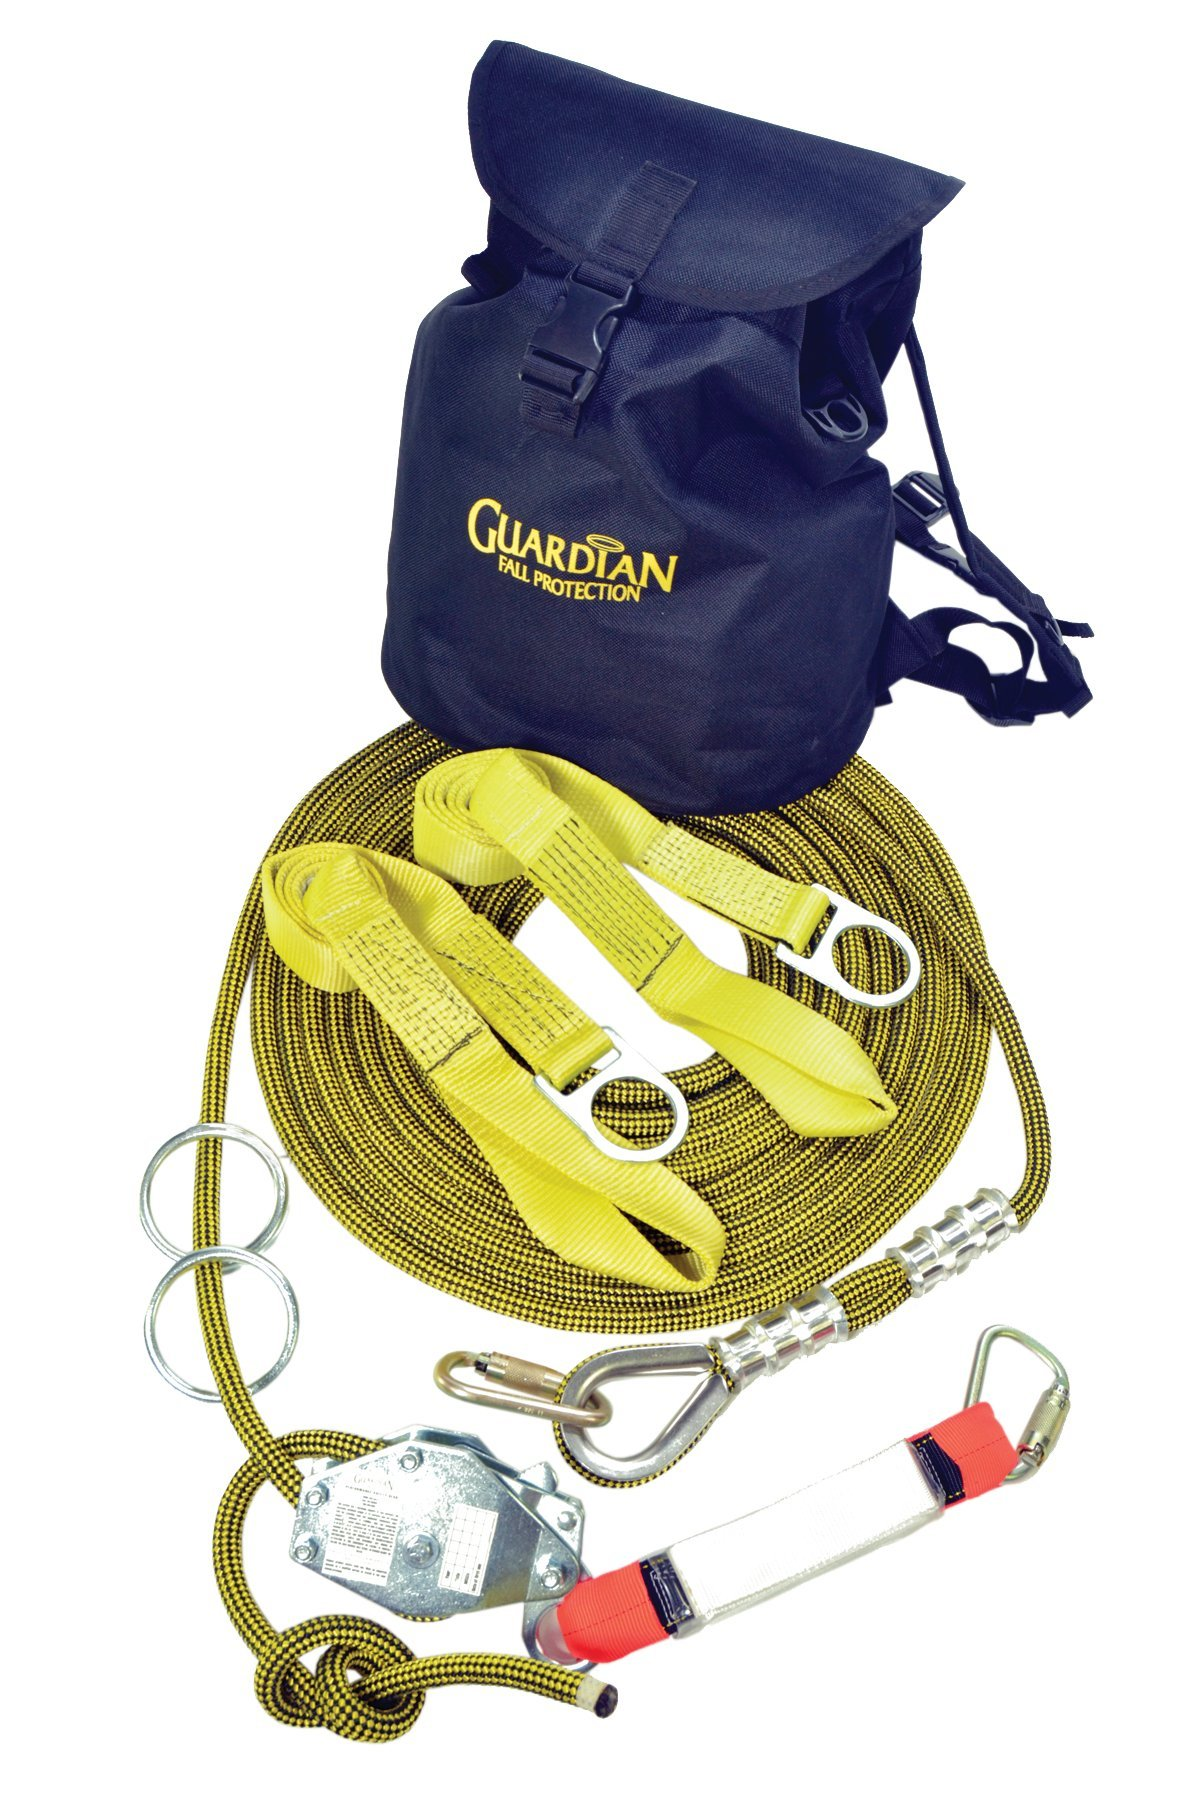 Guardian Fall Protection 04640 Kernmantle Horizontal Lifeline System with Tensioner, 2 O-Rings, 2 Web Slings 2 Steel Carabineers and SOS-Bag, 100-Foot